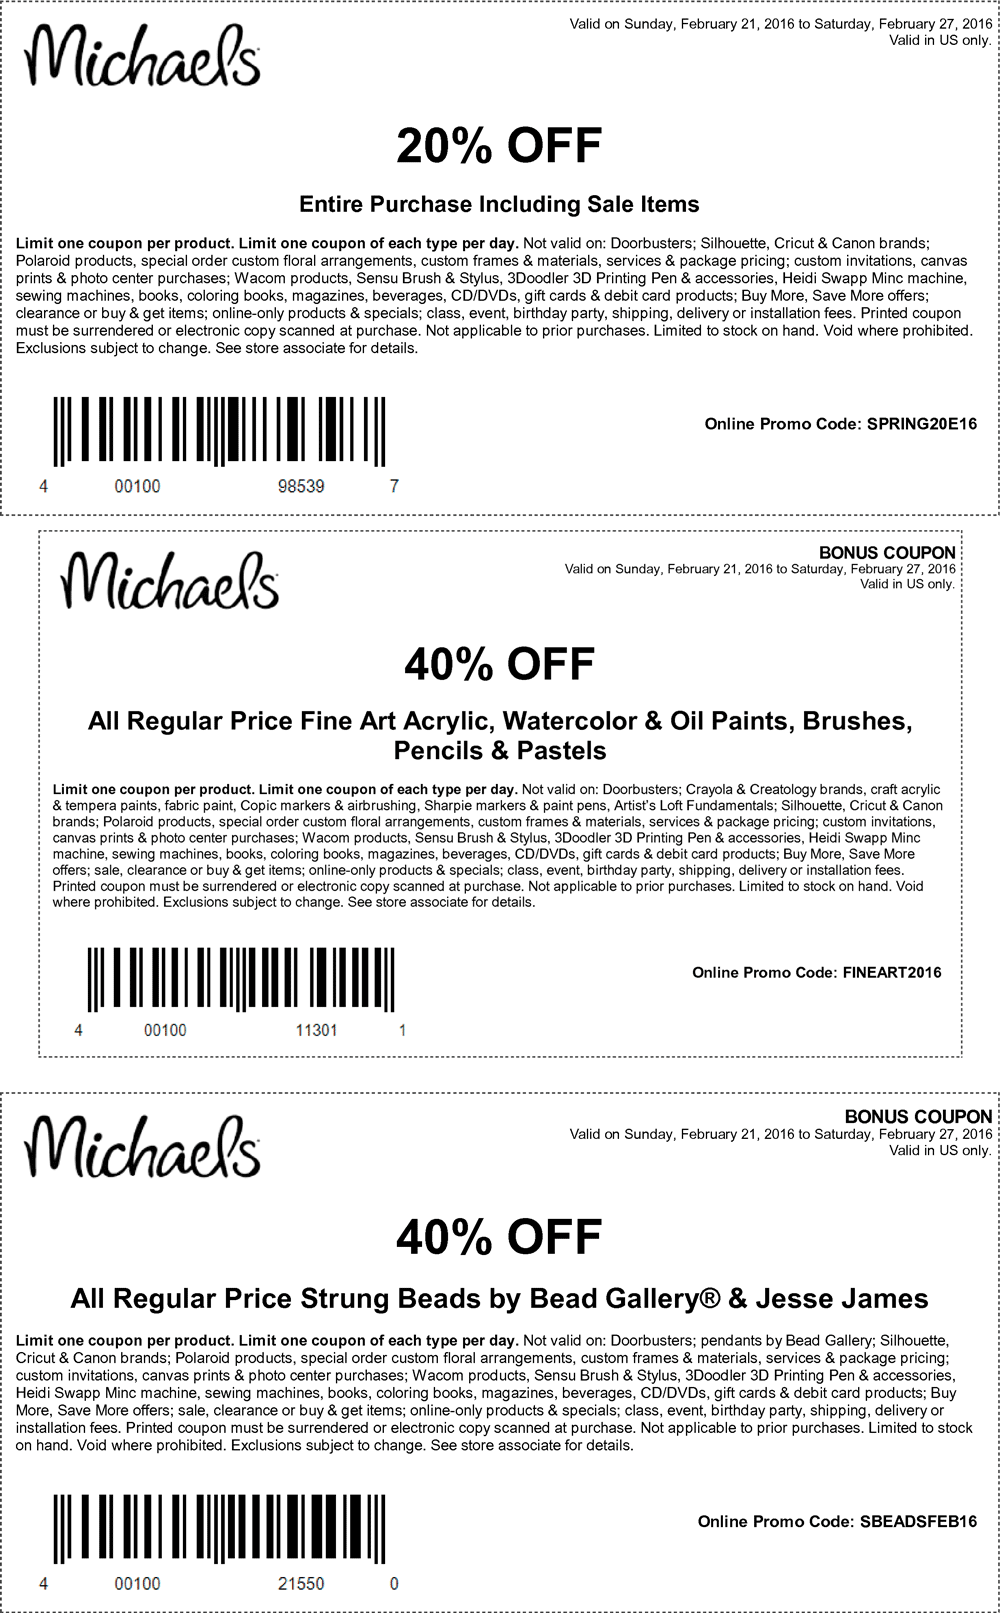 Michaels Coupon September 2018 20% off everything at Michaels, or online via promo code SPRING20E16